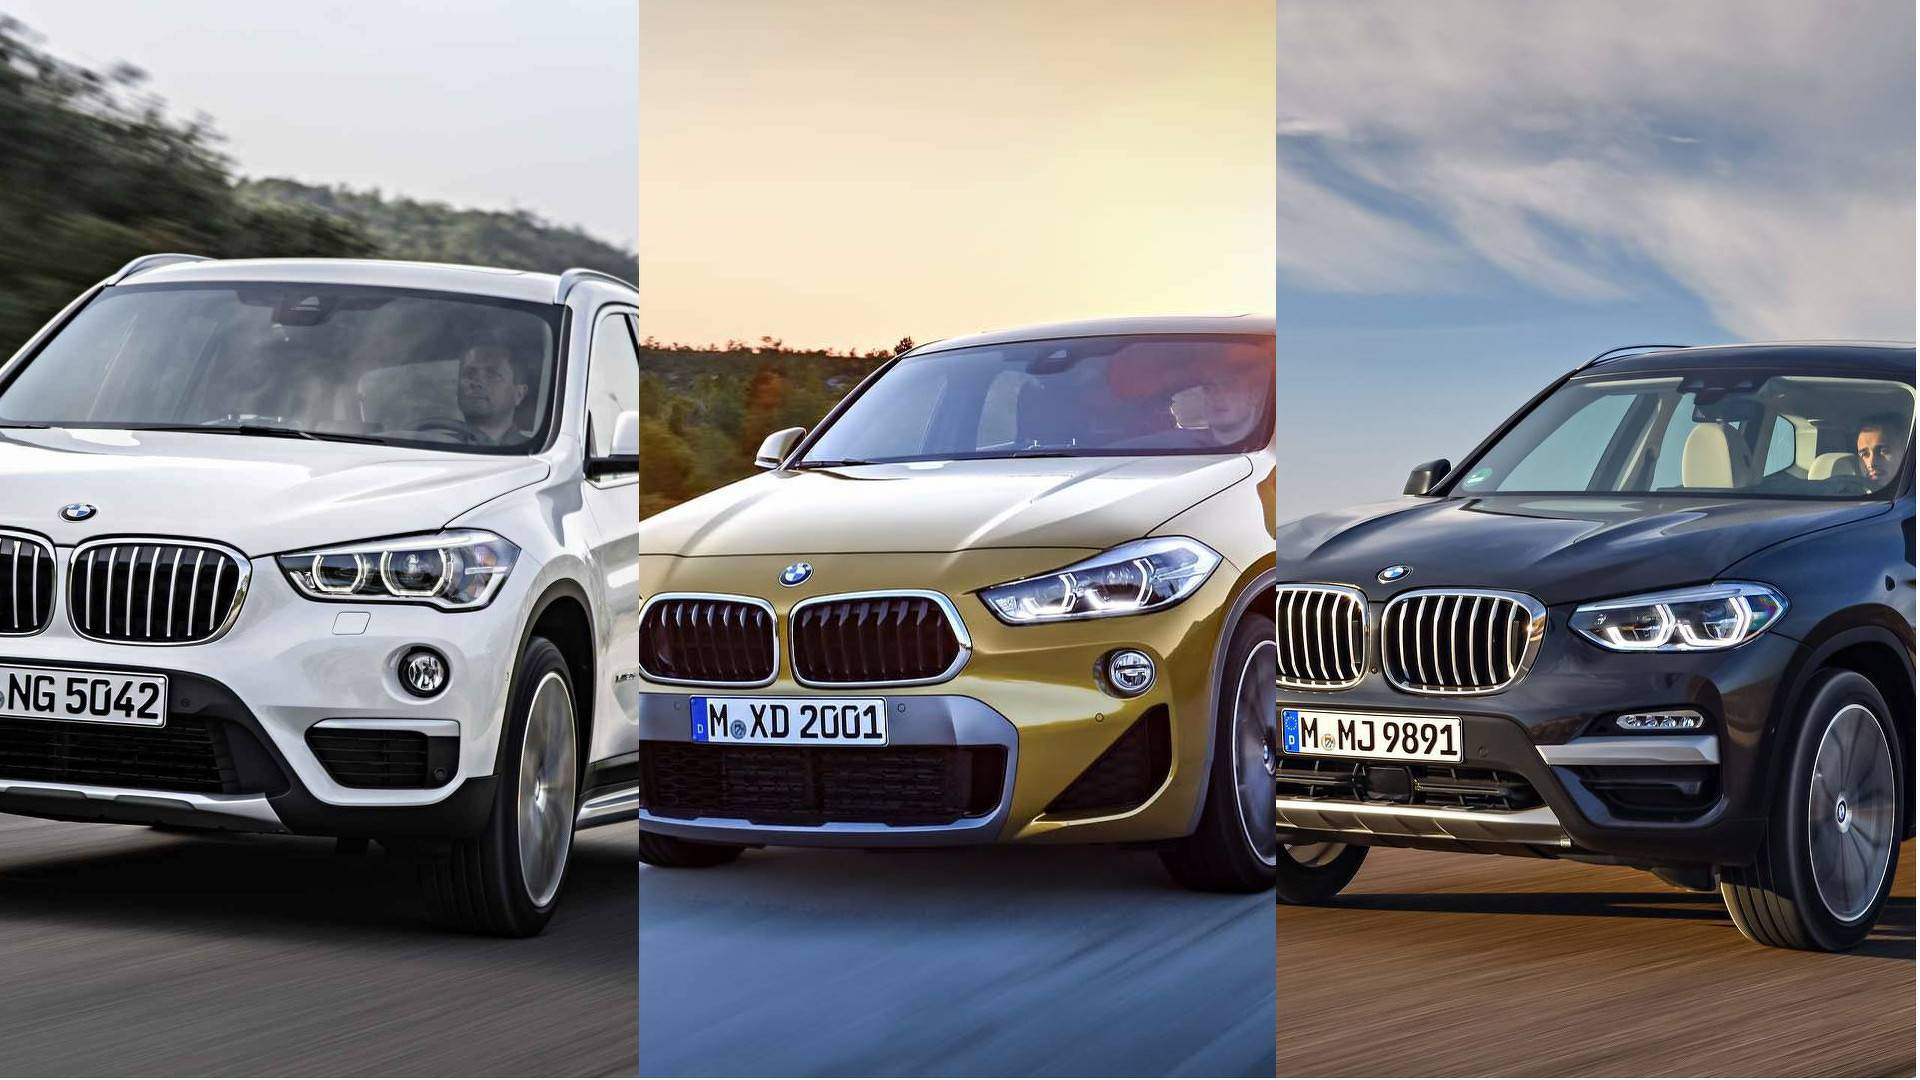 Bmw X1 Vs X2 Vs X3 Head To Head By Numbers